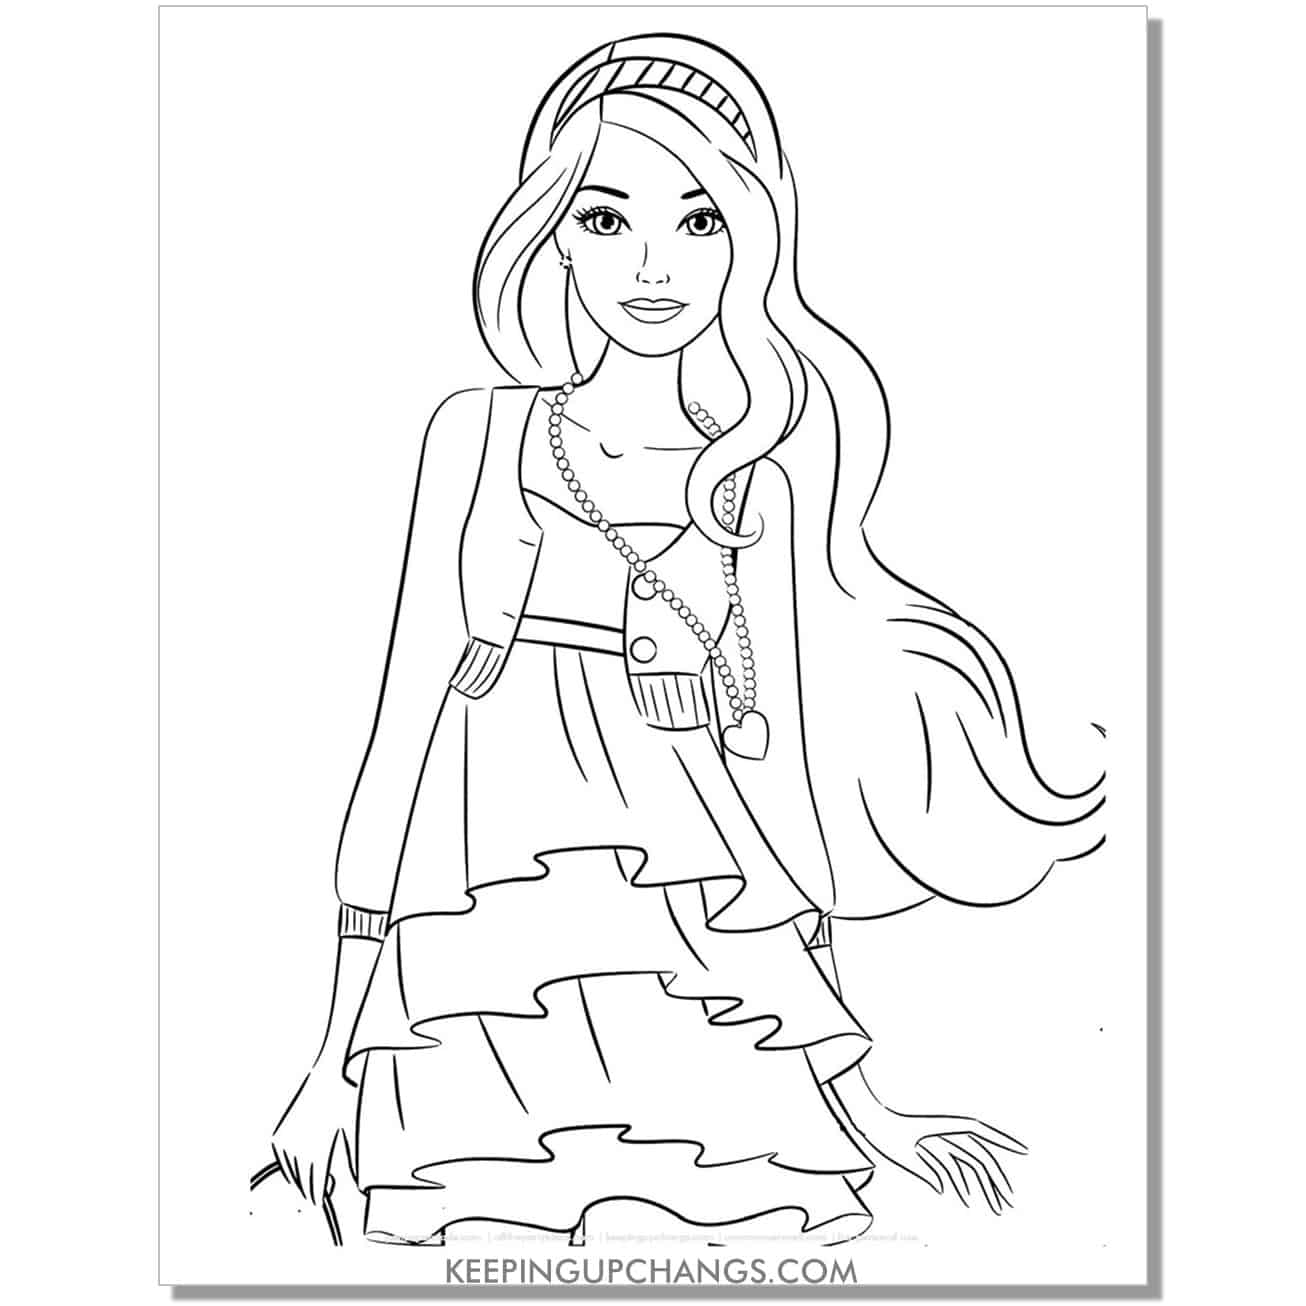 teen barbie with heart necklace coloring page.